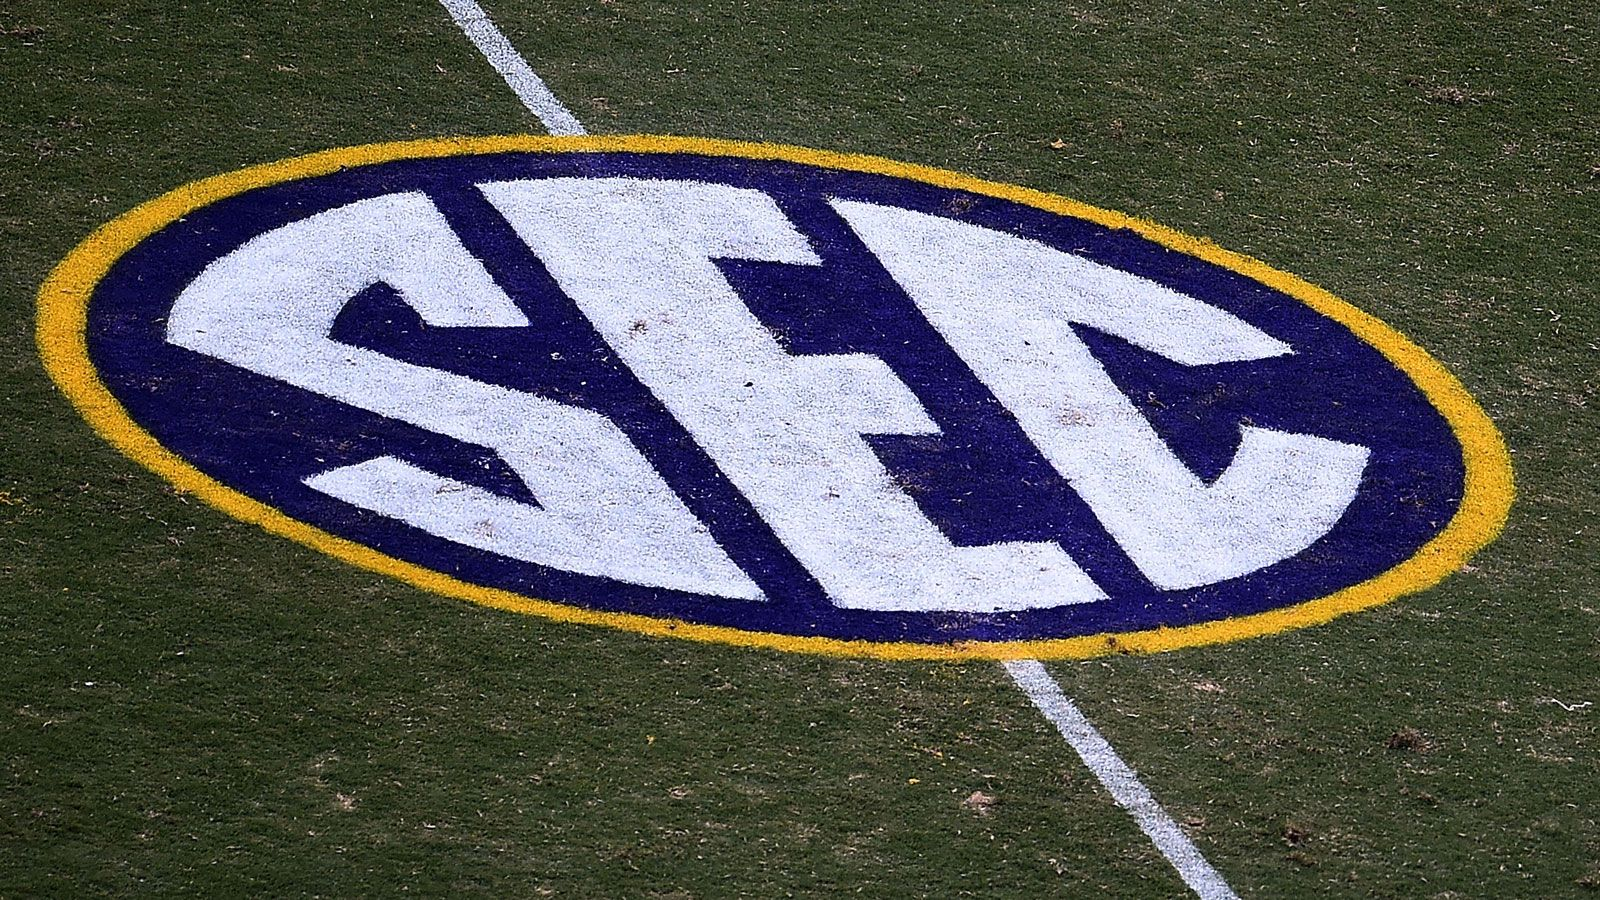 2019 Preseason Coaches All-SEC Football Team announced